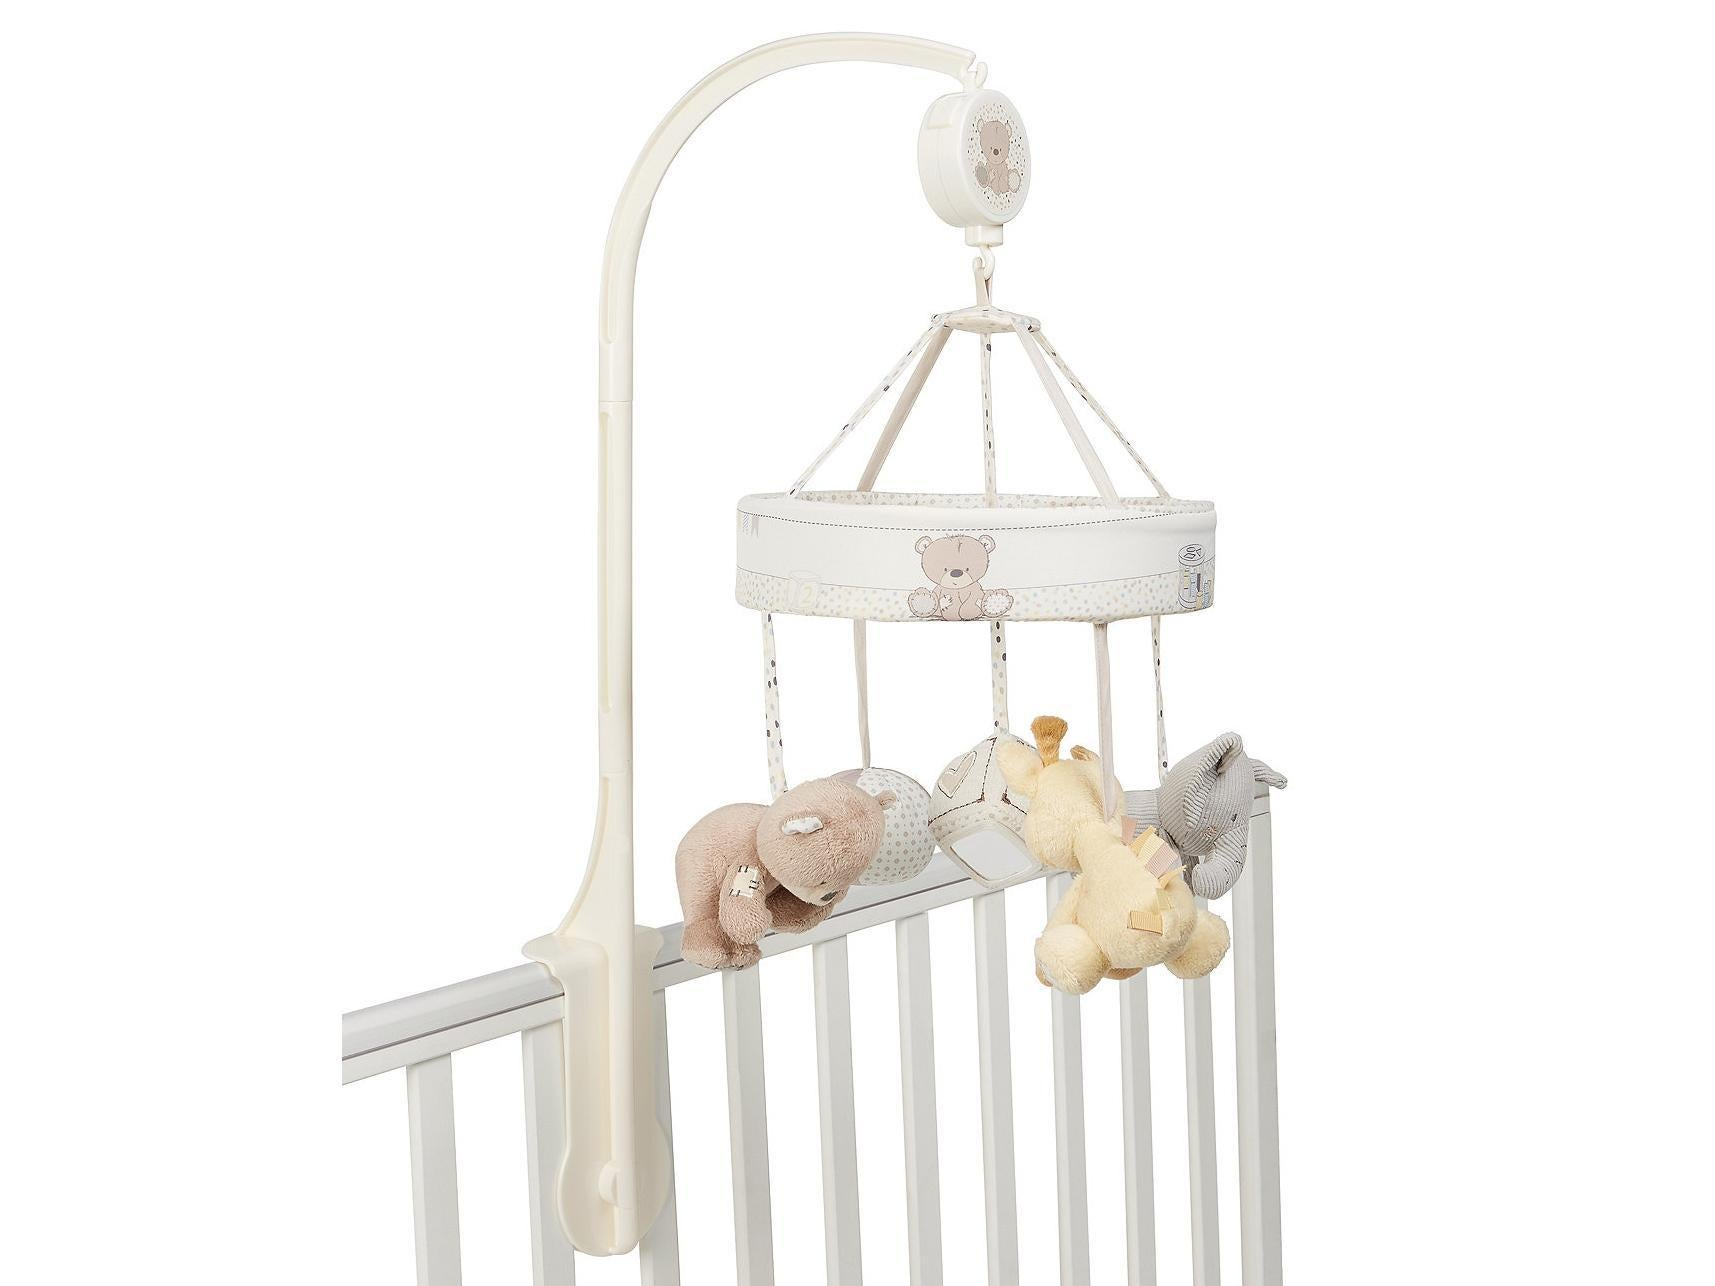 10 Best Baby Mobiles The Independent